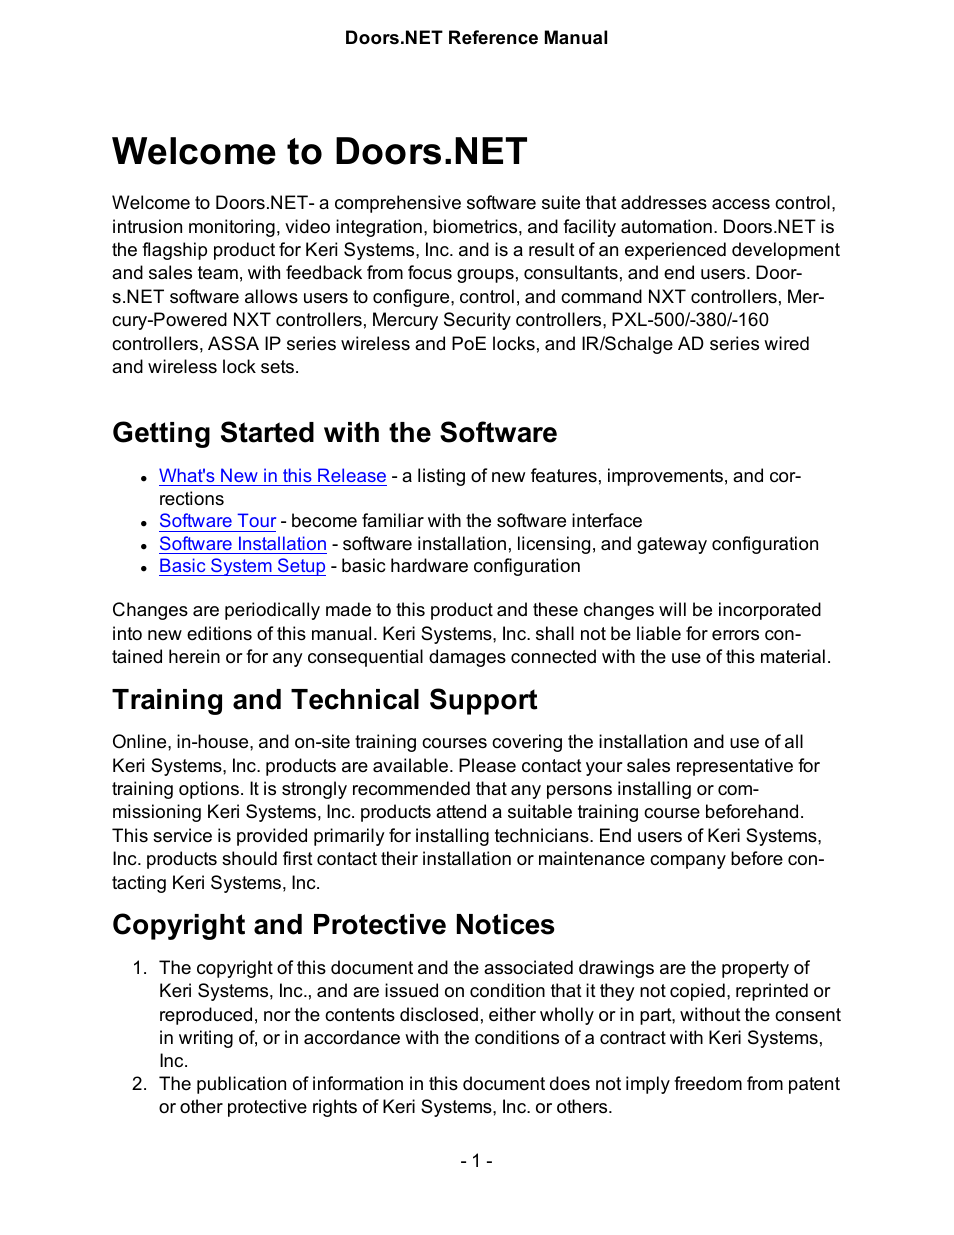 keri systems doorsnet manual page1 keri systems doors net manual user manual 602 pages Magnetic Door Locks Access Control at creativeand.co